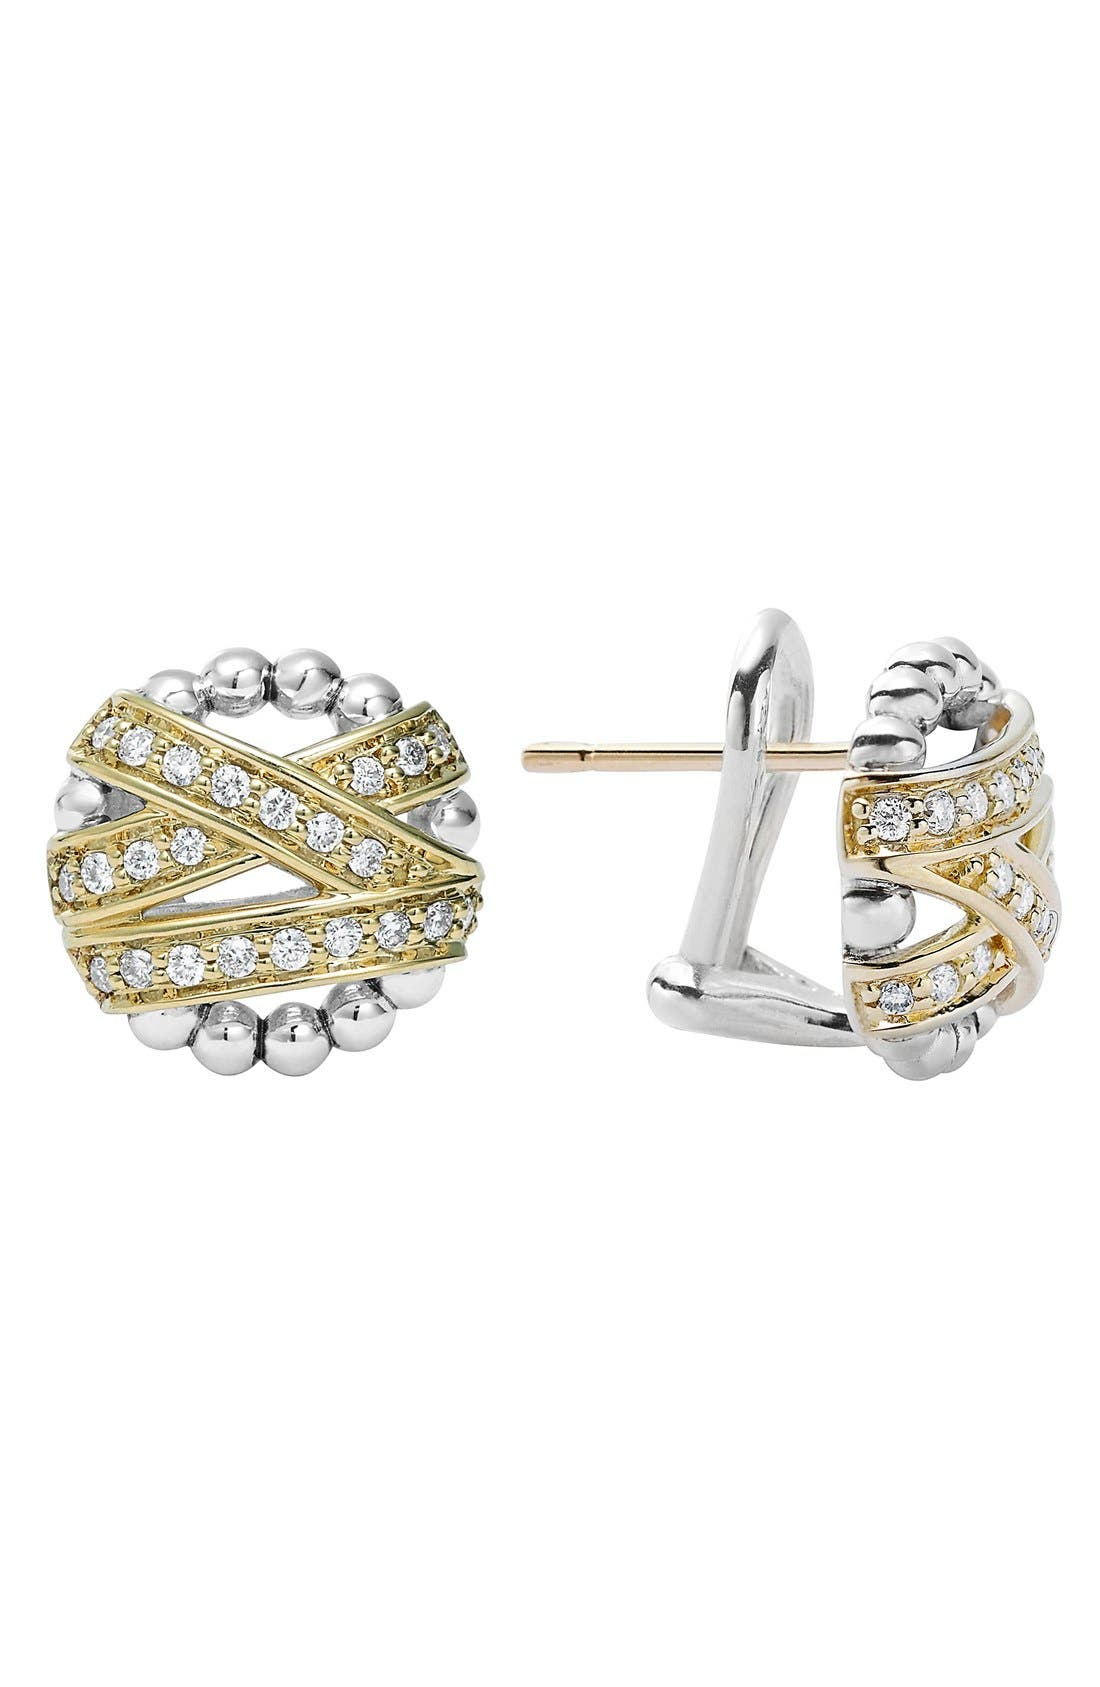 LAGOS Diamonds & Caviar Diamond Stud Earrings